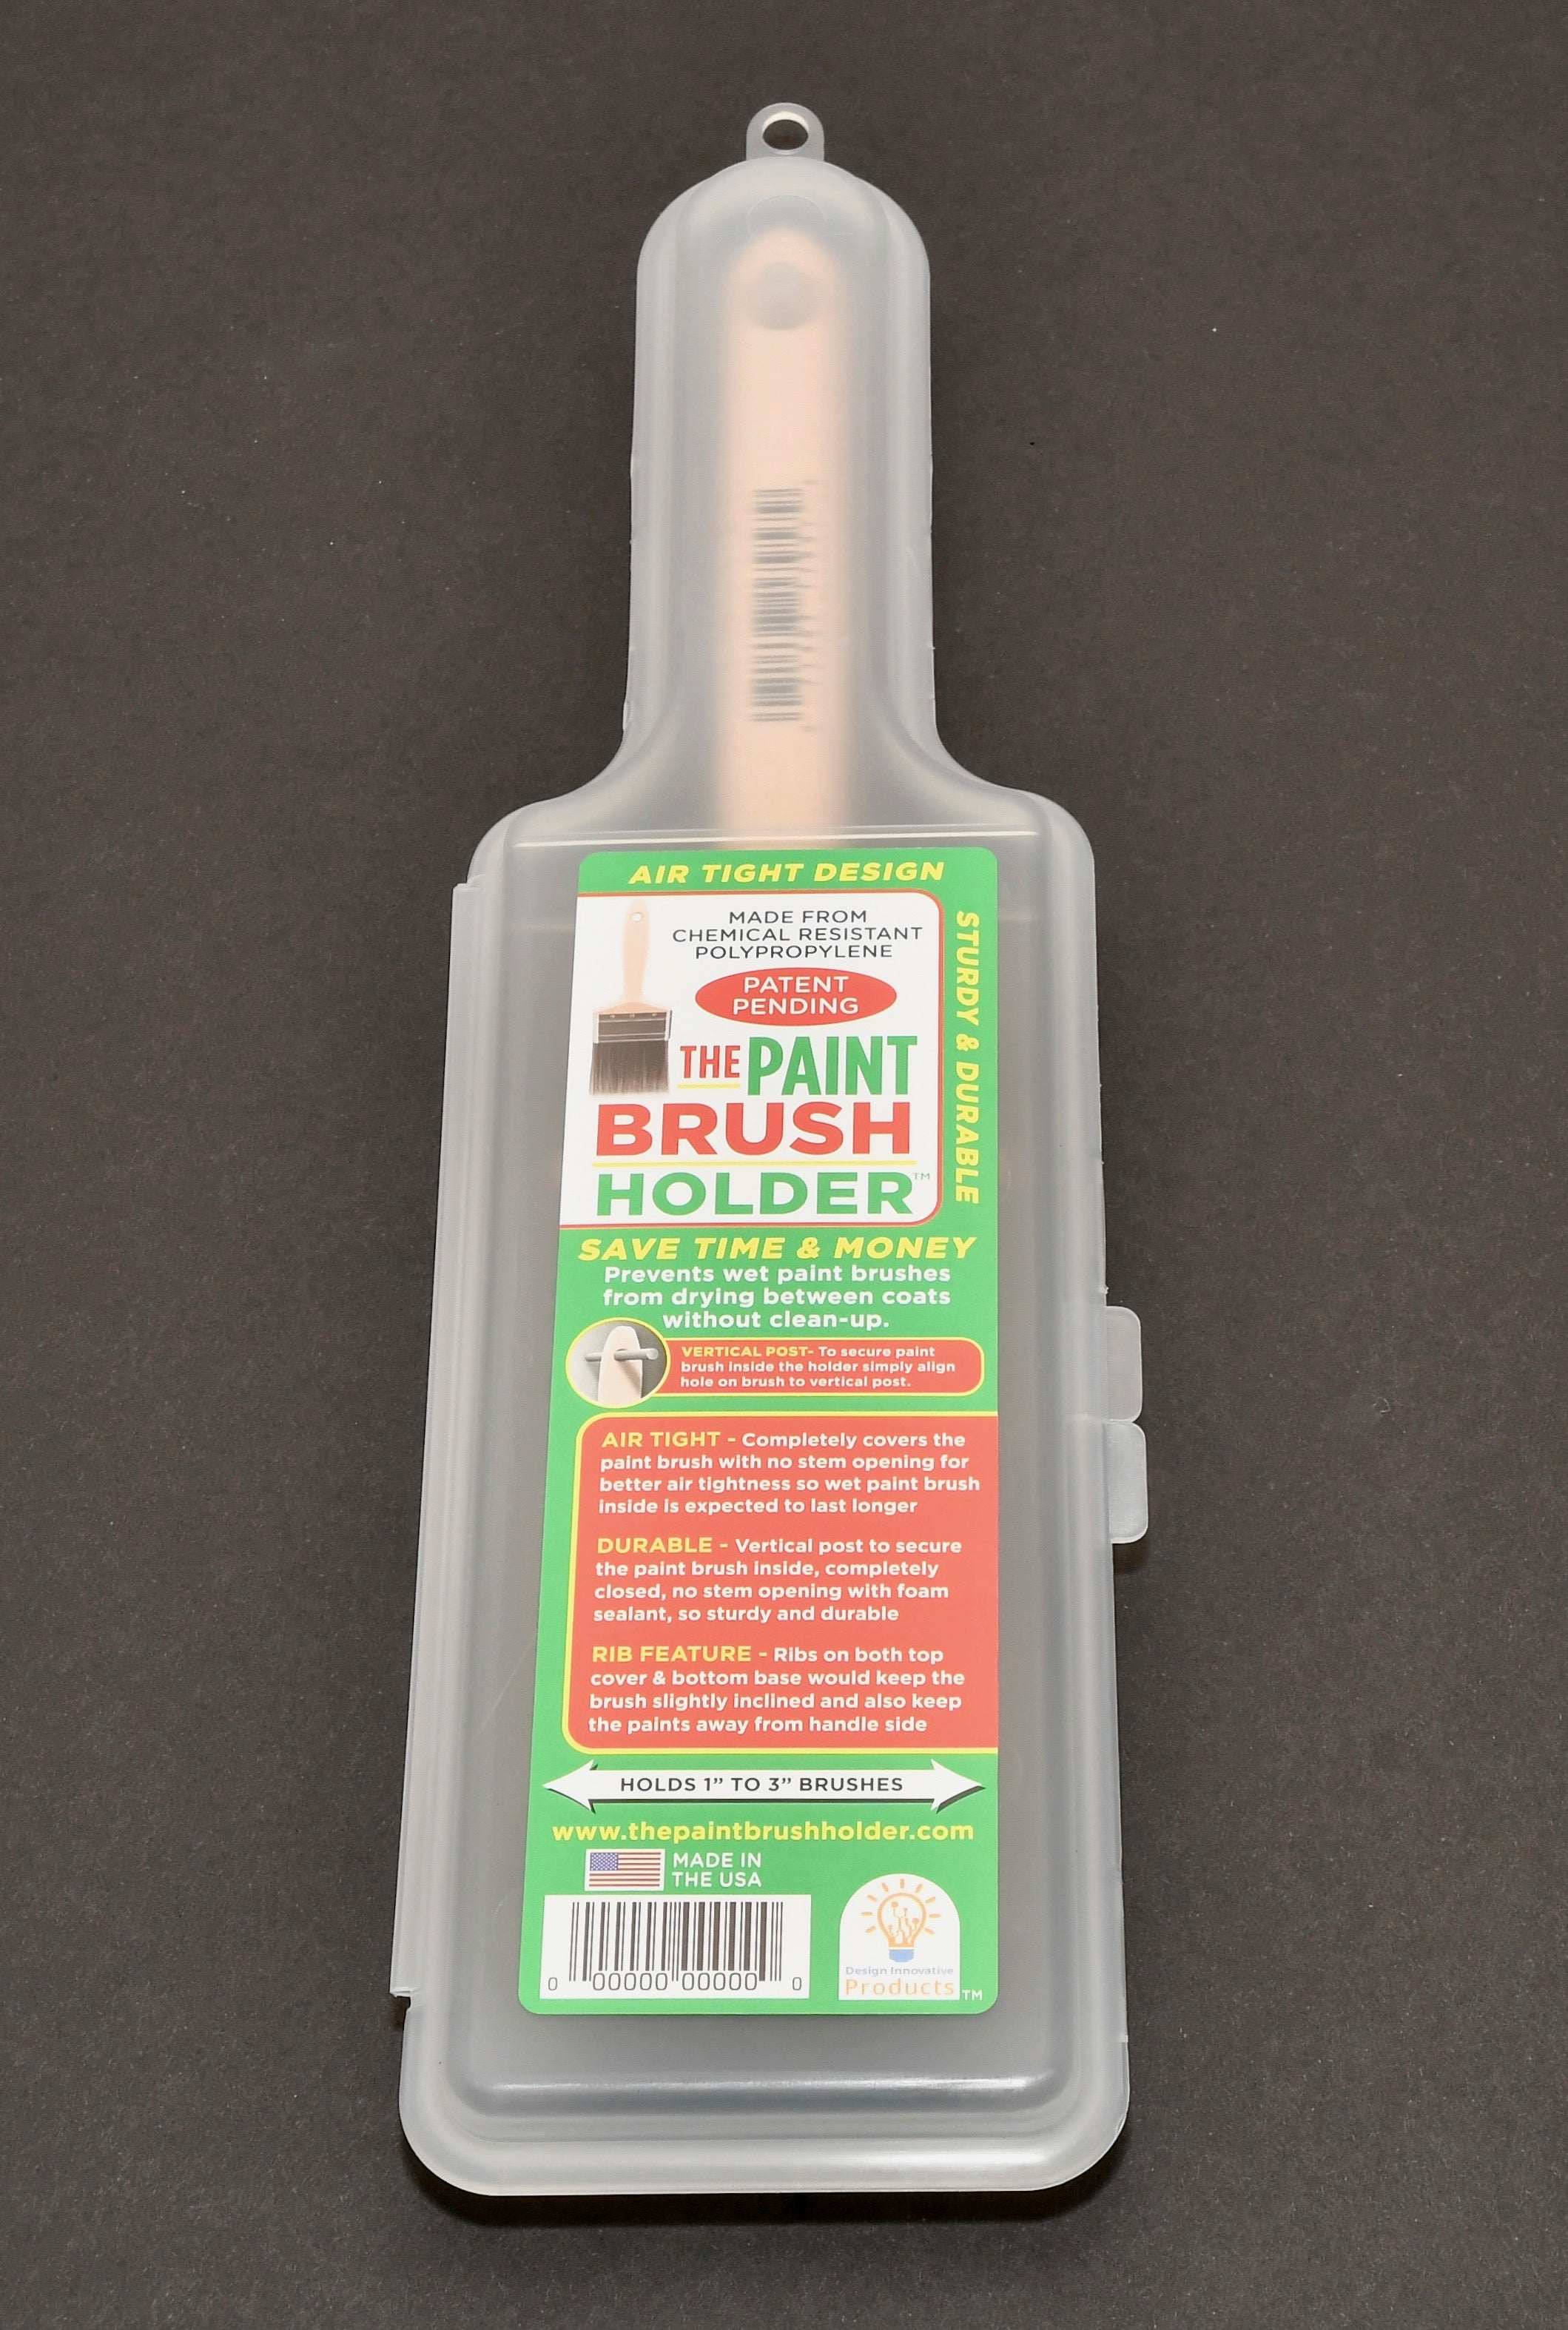 The Paint Brush Holder To Store Wet Brushes 1/2-3 Inch For >30 Days (20 Pack)